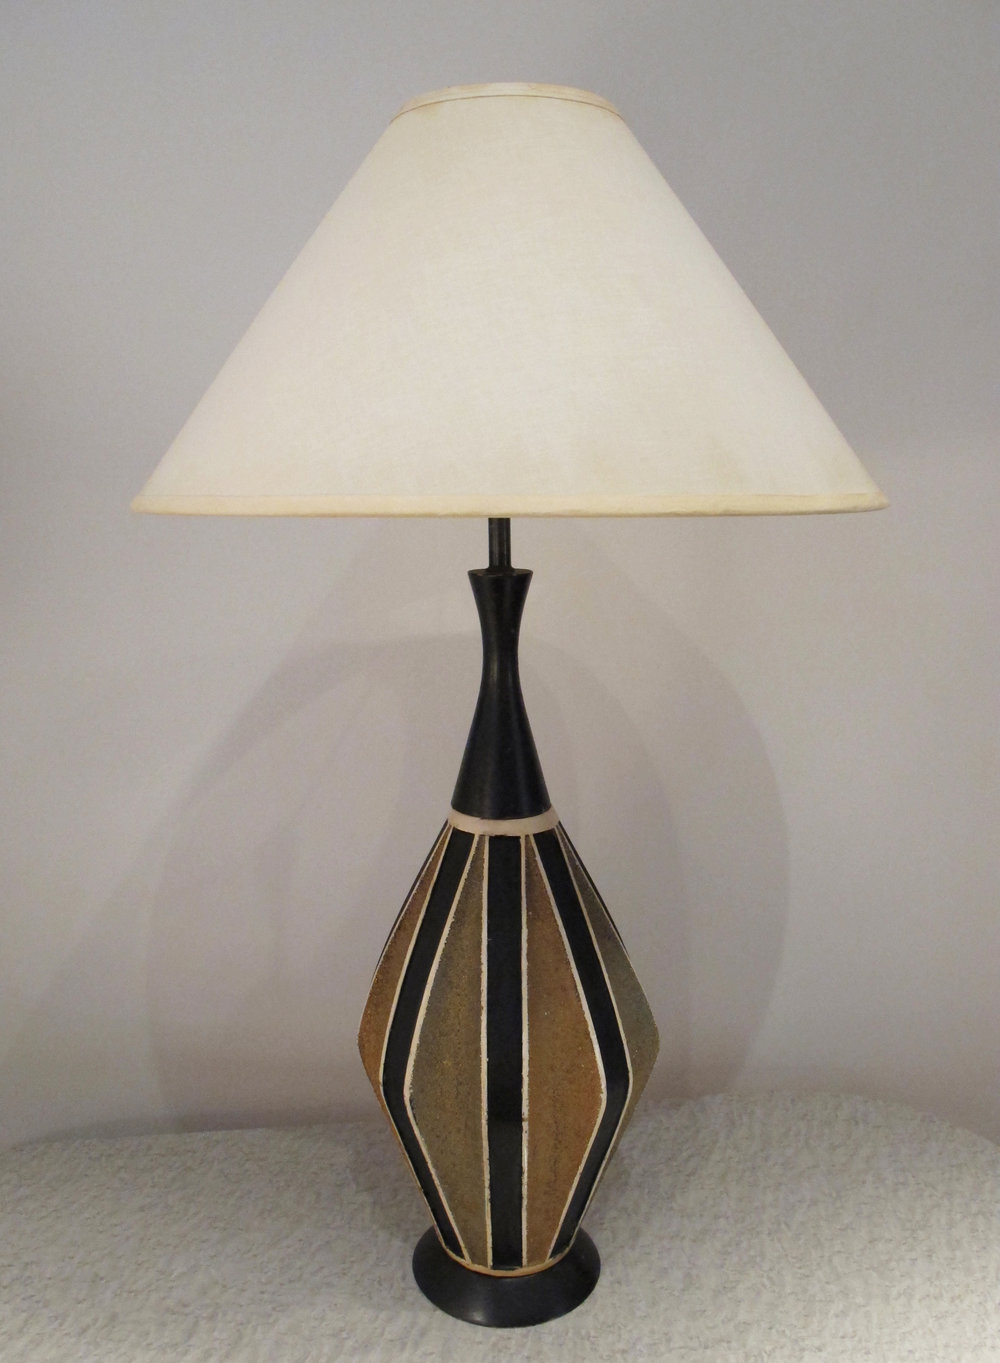 MID CENTURY CERAMIC LAMP WITH EBONY WOOD BY QUARTITE CREATIVE